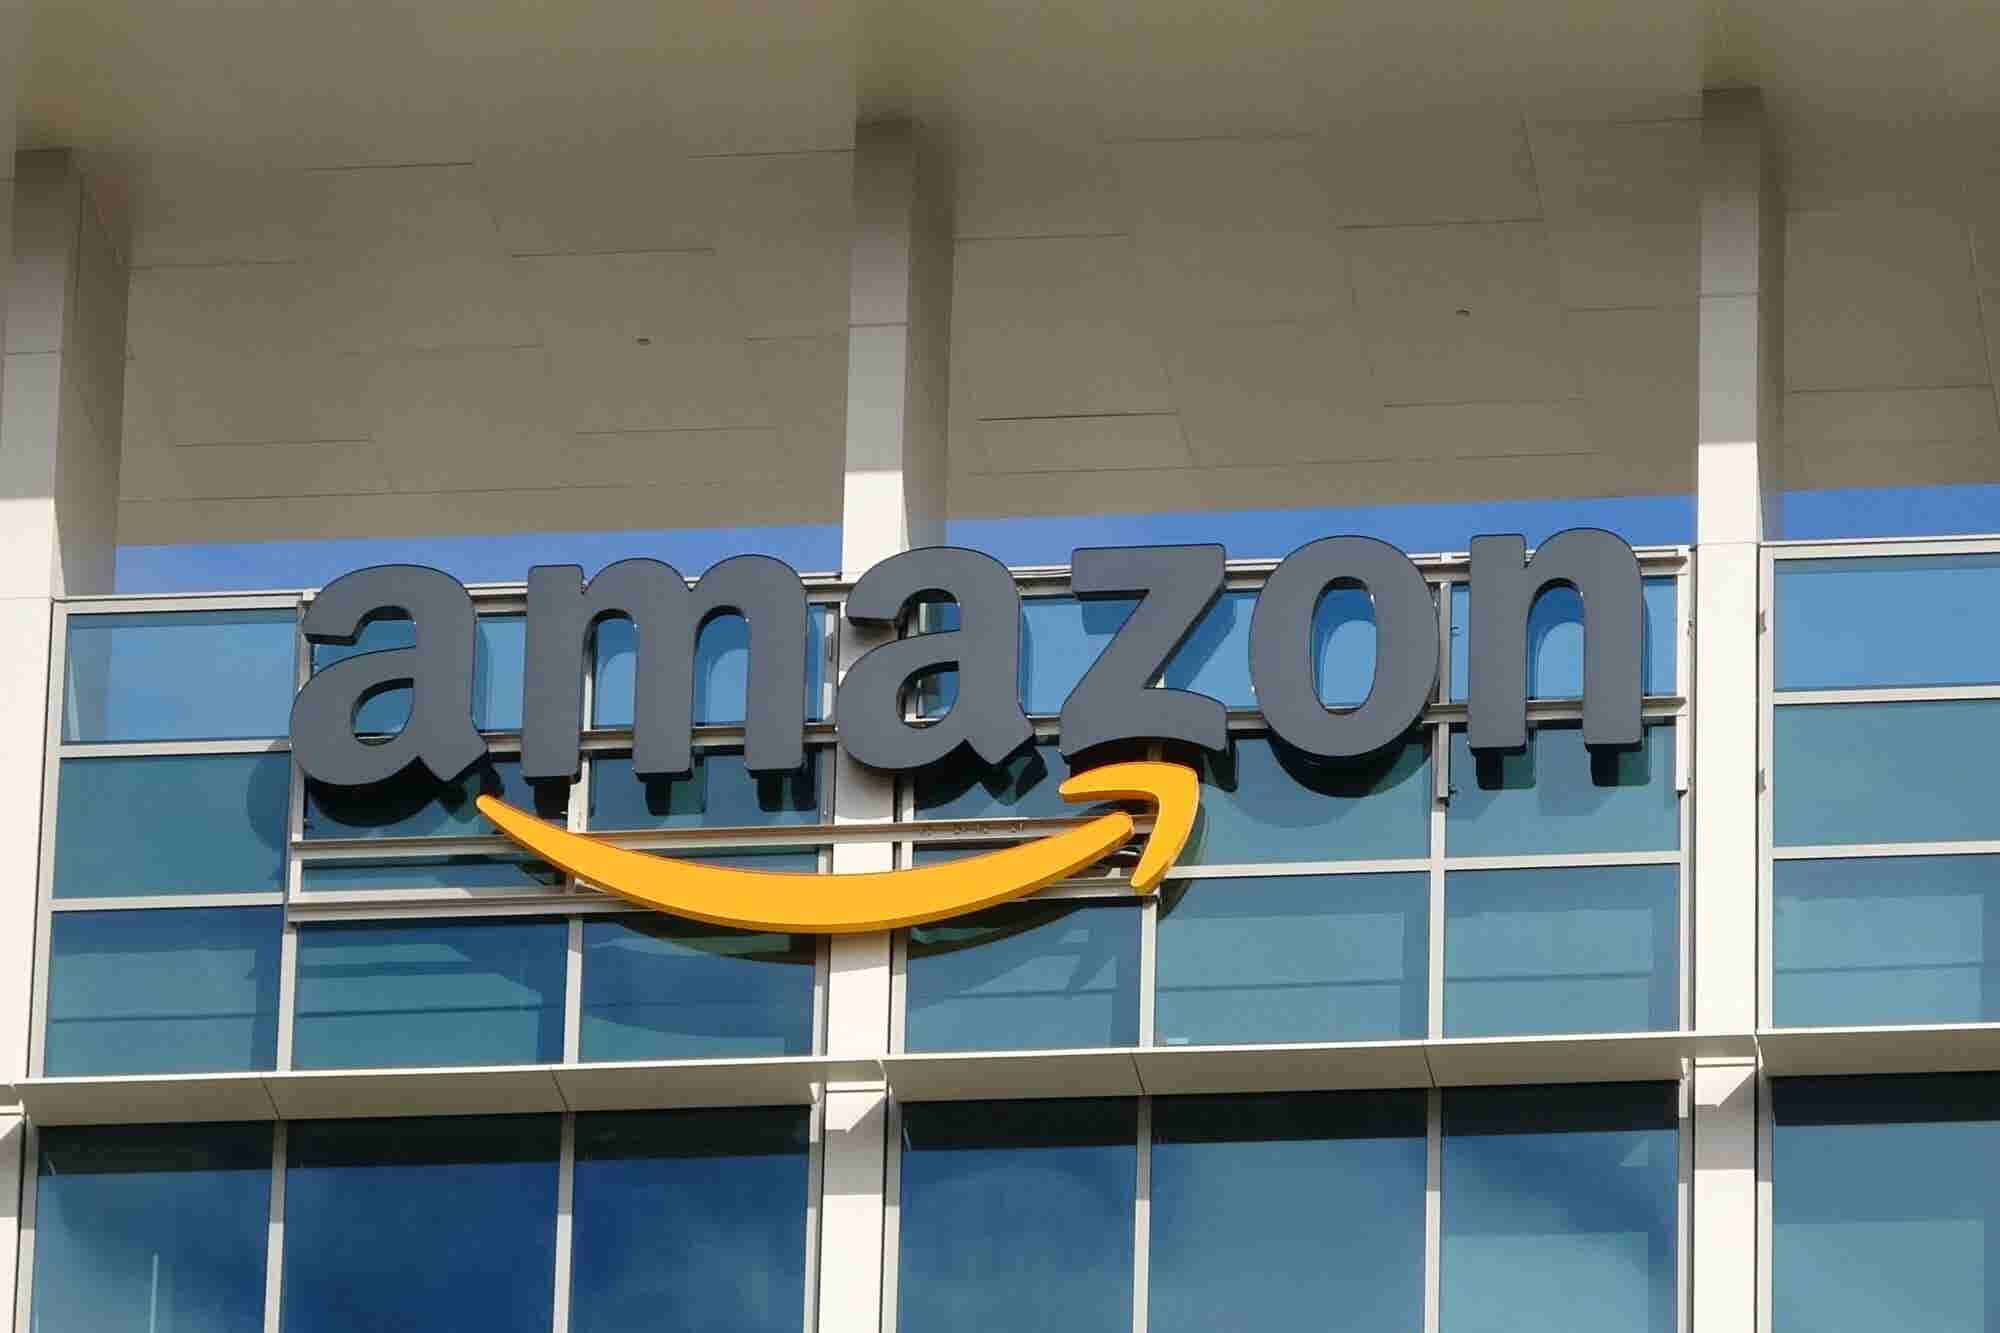 Read Amazon's Statement on Why It Is Pulling Out of Planned HQ2 in New...